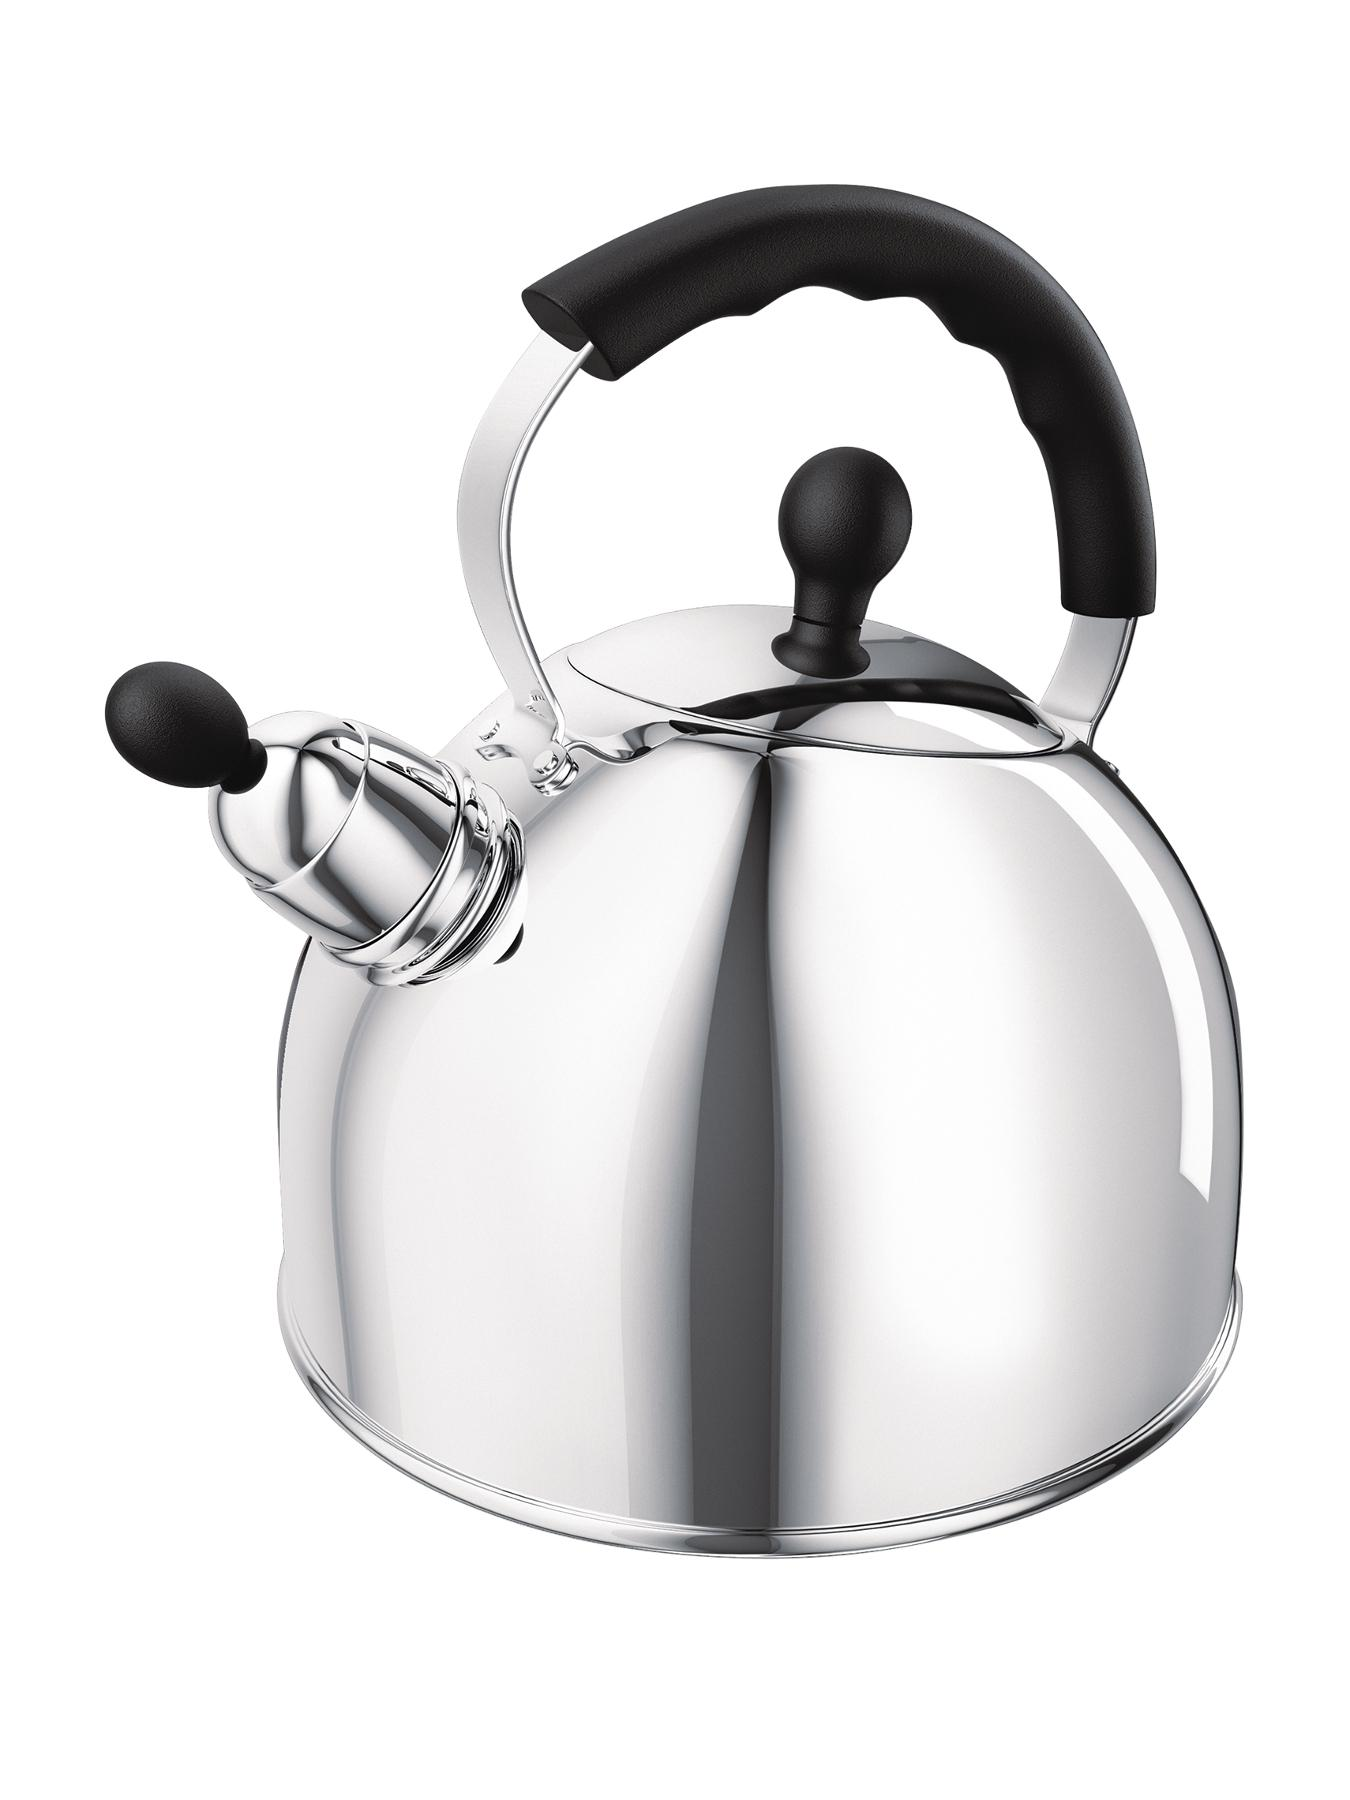 2.5 Litre Whistling Kettle - Stainless Steel